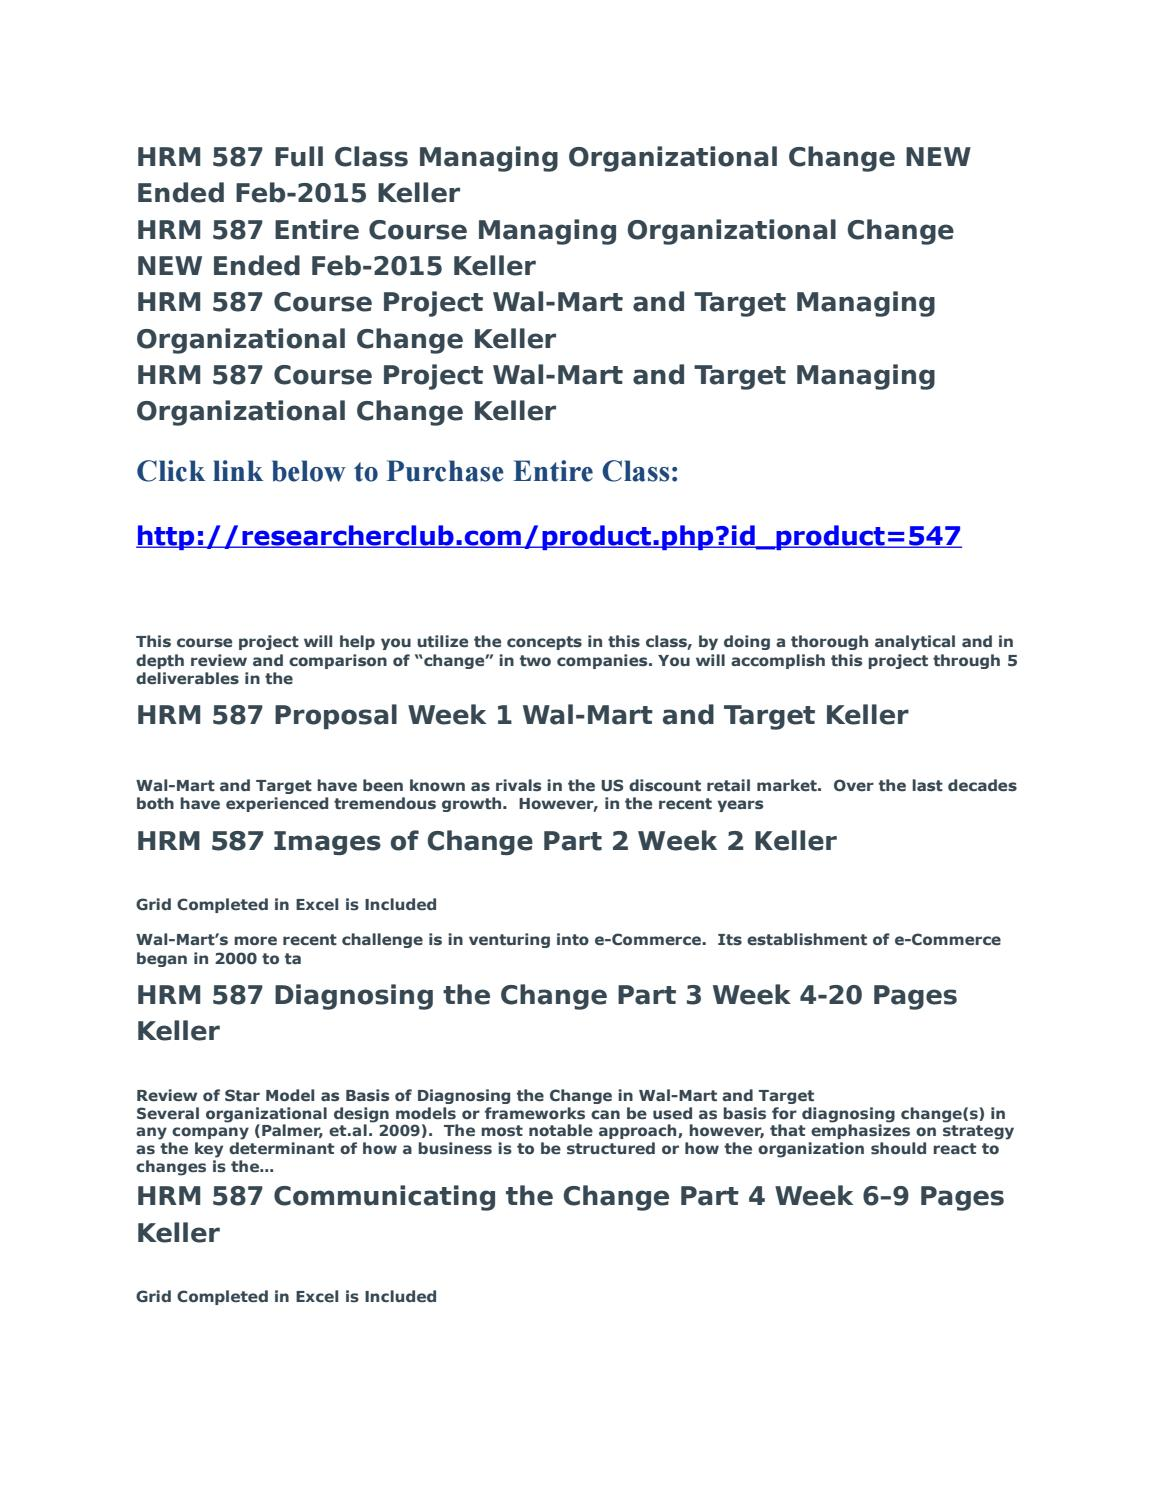 hrm 587 course project This file of hrm 587 week 2 course project managing organizational change part 2 covers:the images section focuses on the six different images of managing change and how each approach to change effects all that follows in its implementation and continued support.